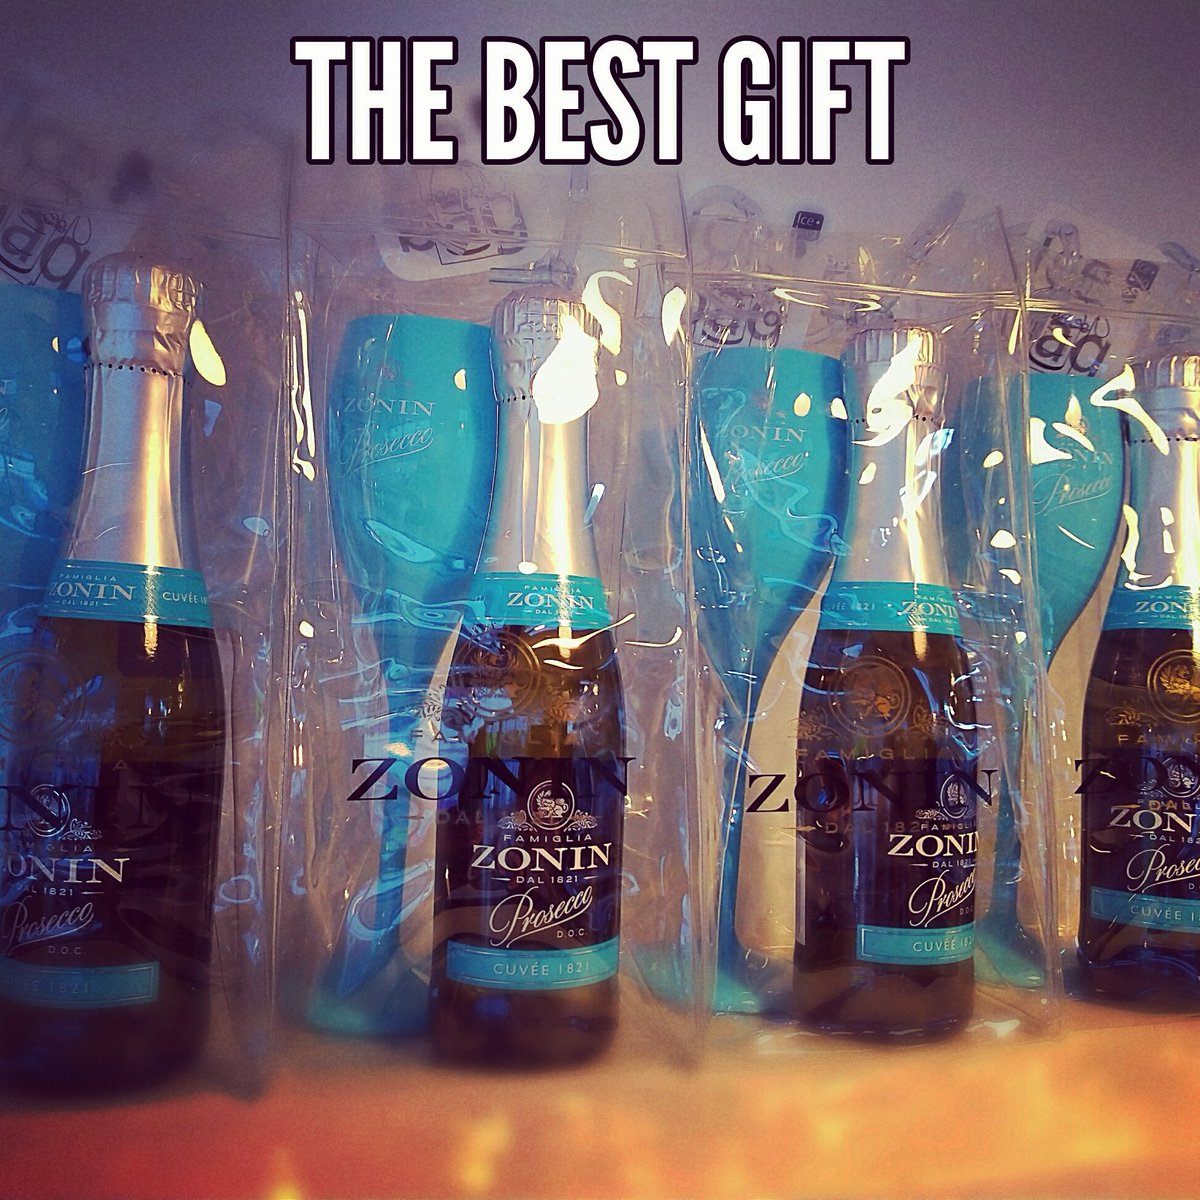 The perfect gift has arrived! Prosecco cuvee, blue glass and ice bag!! #ChristmasIsComing #christmasgifts #prosecco #proseccolovers #theposhgift